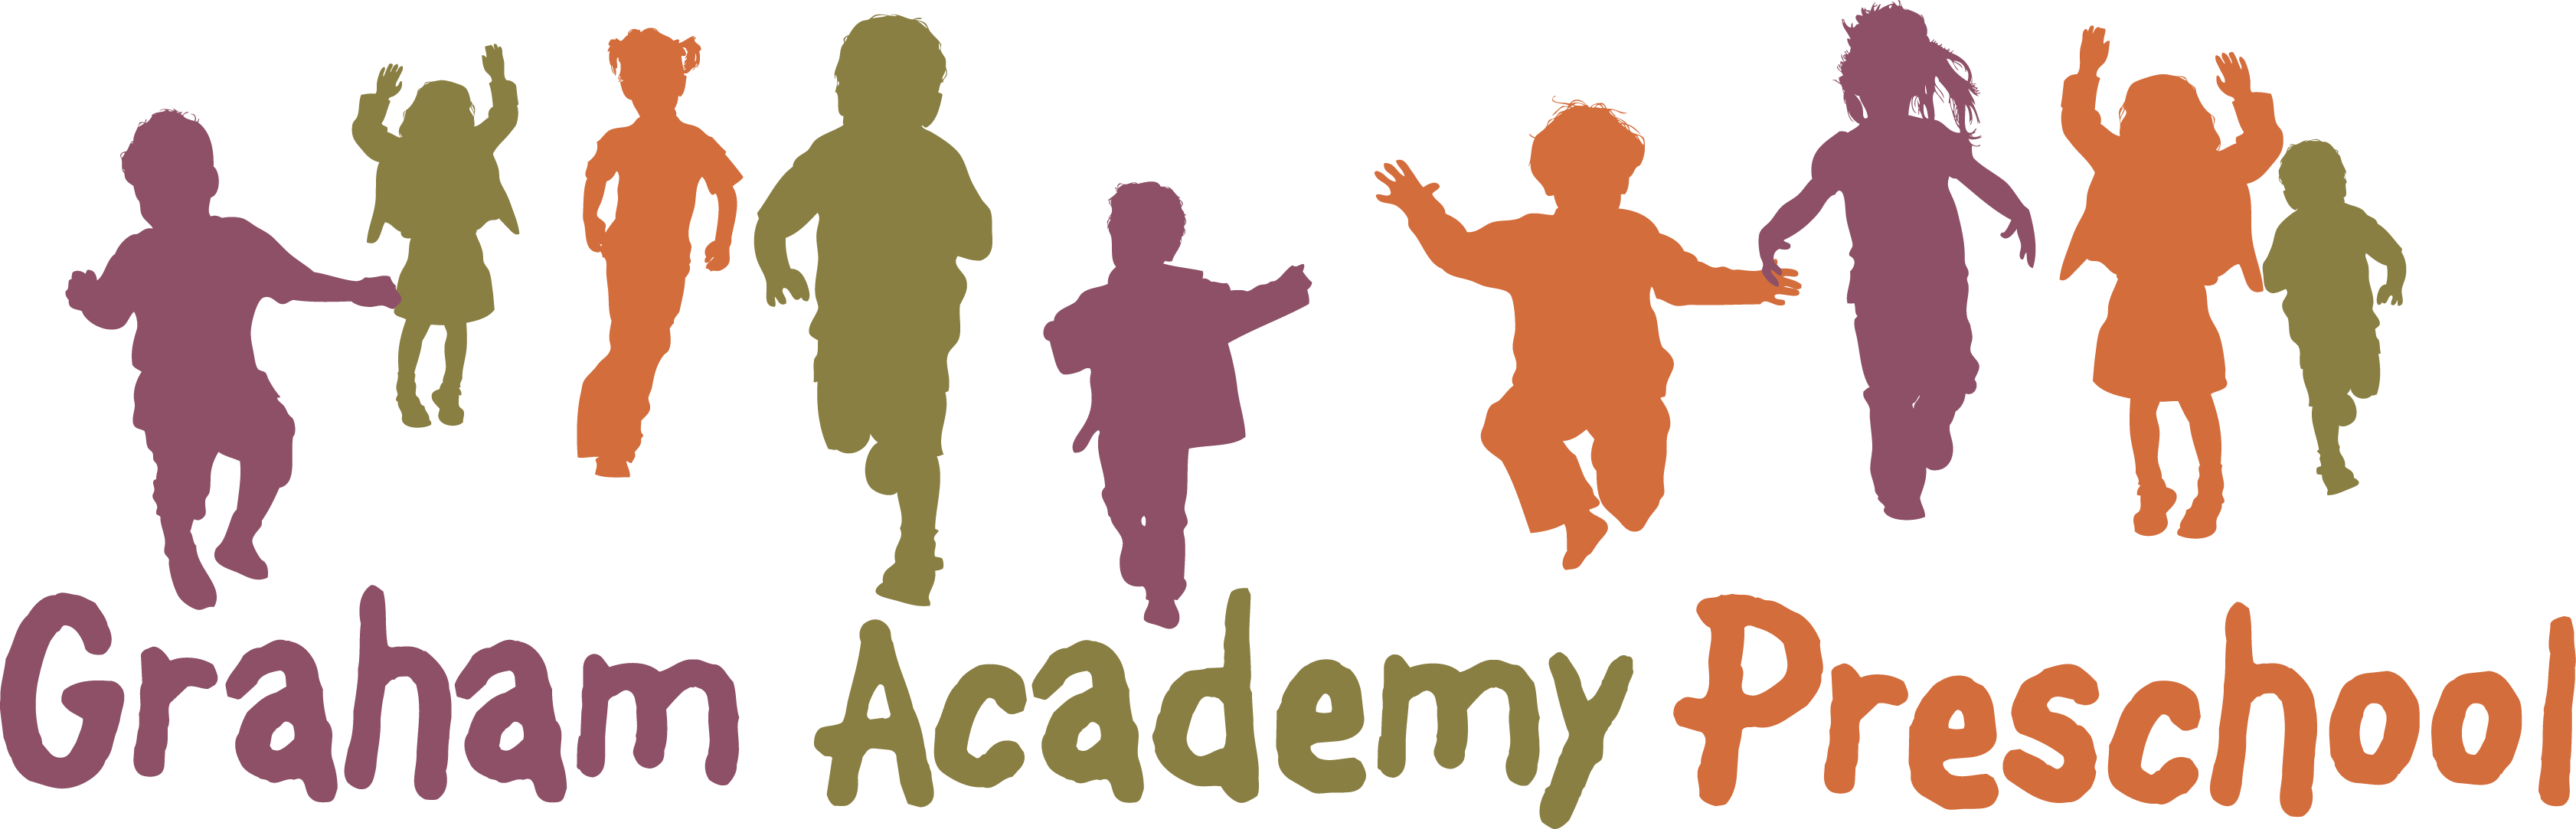 Graham Academy Preschool